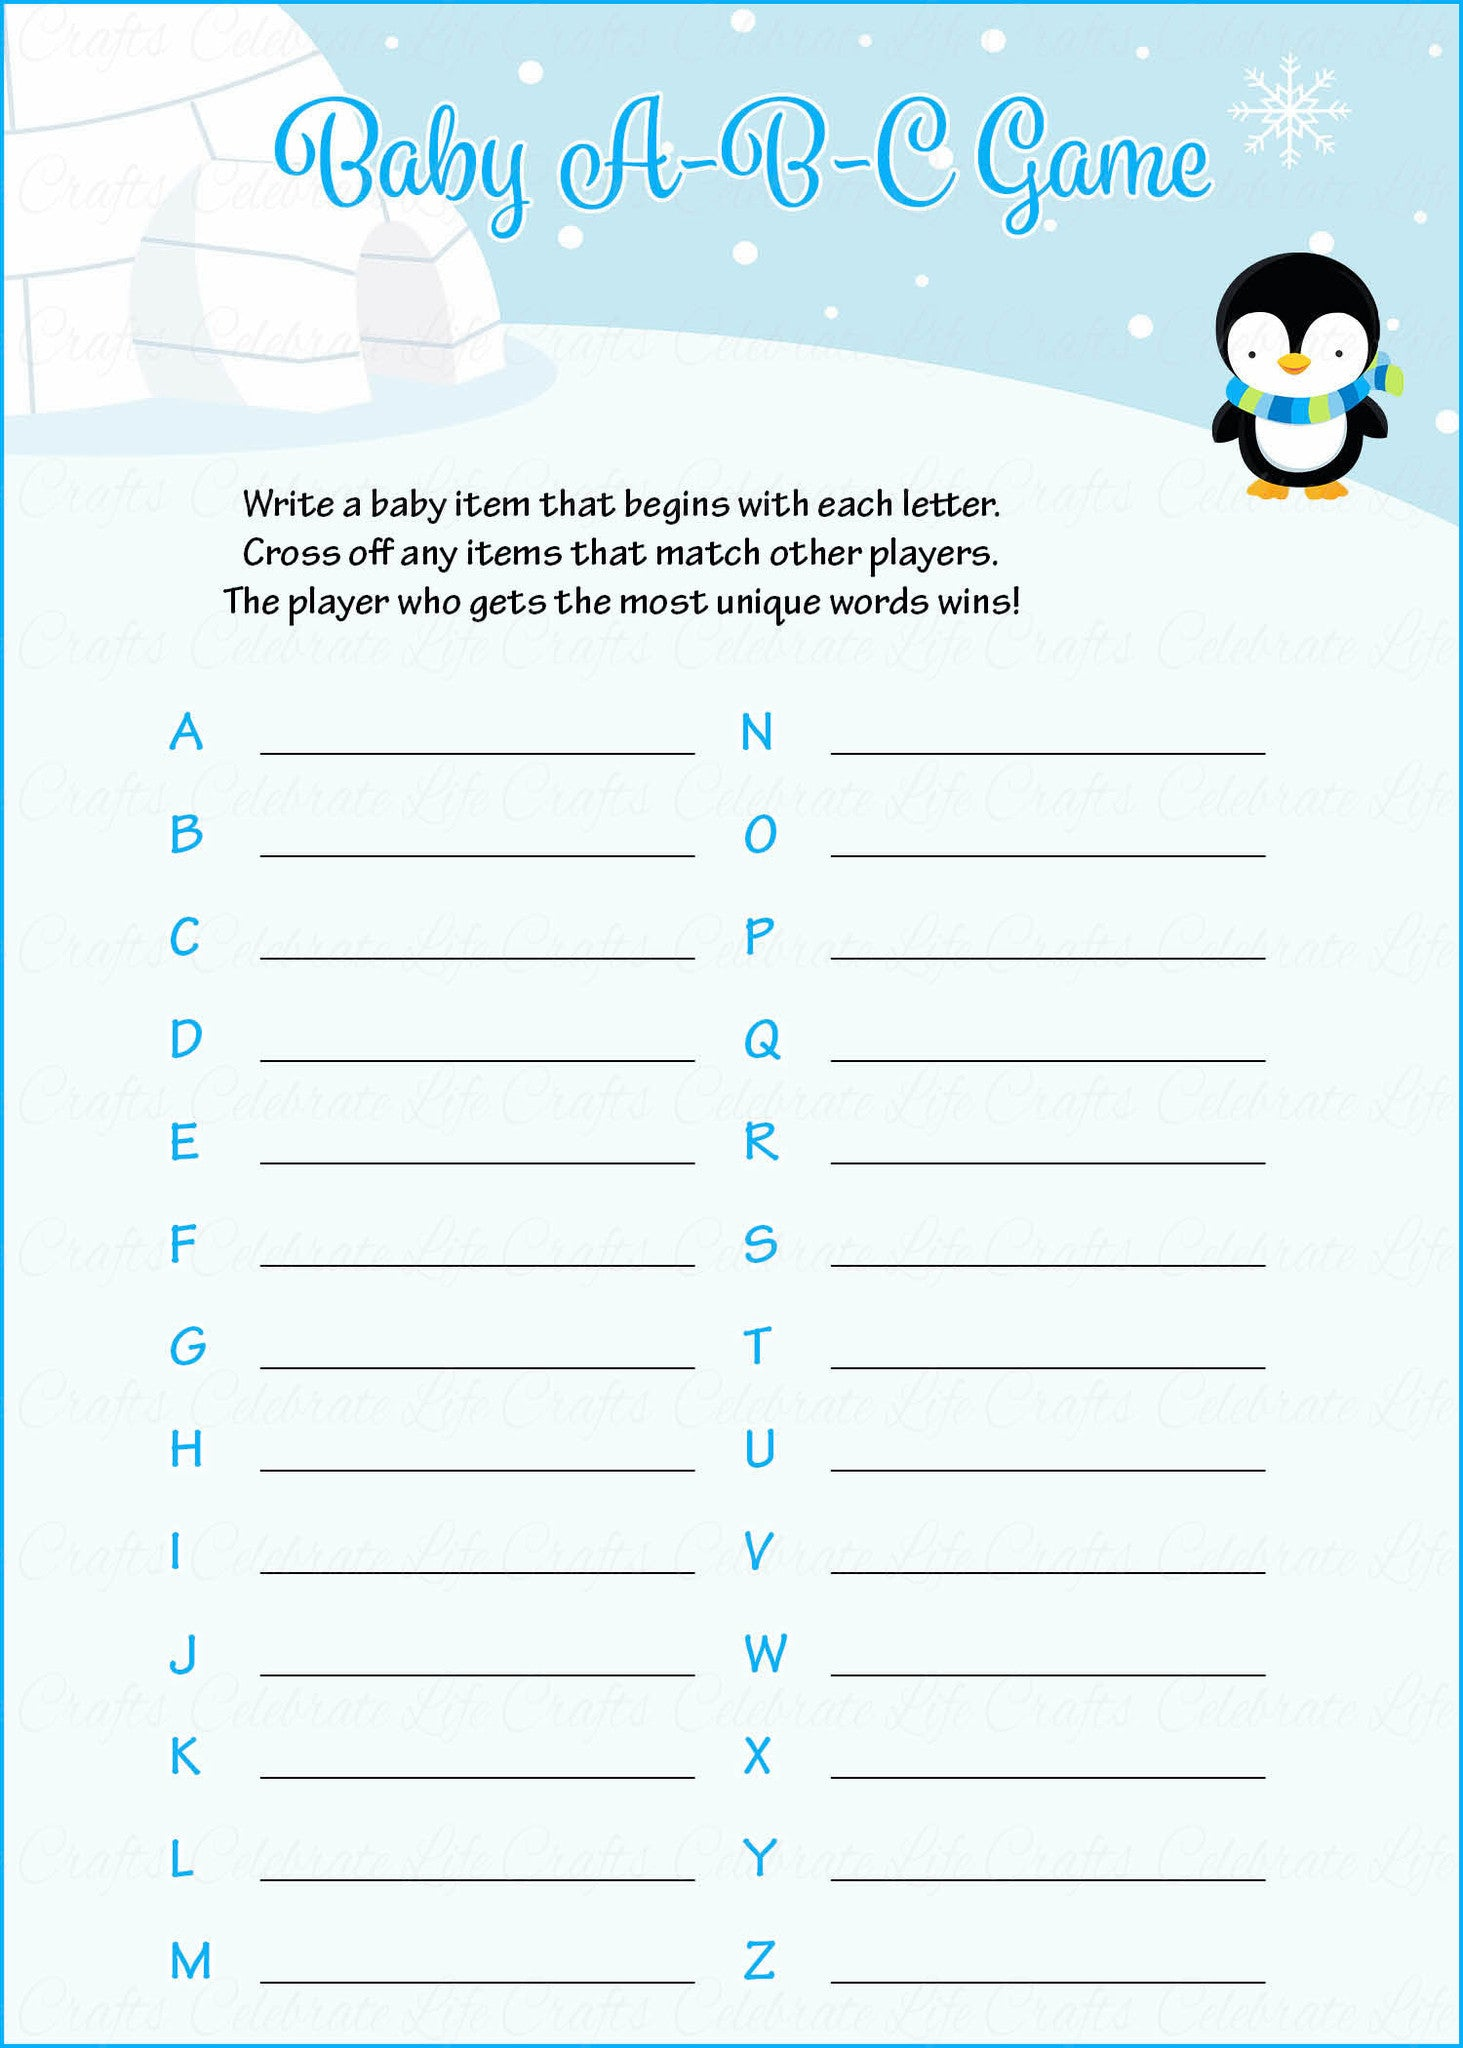 photograph relating to Printable Alphabet Games named Child ABC Video game - Printable Obtain - Blue Penguin Winter season Boy or girl Shower Activity - B22006